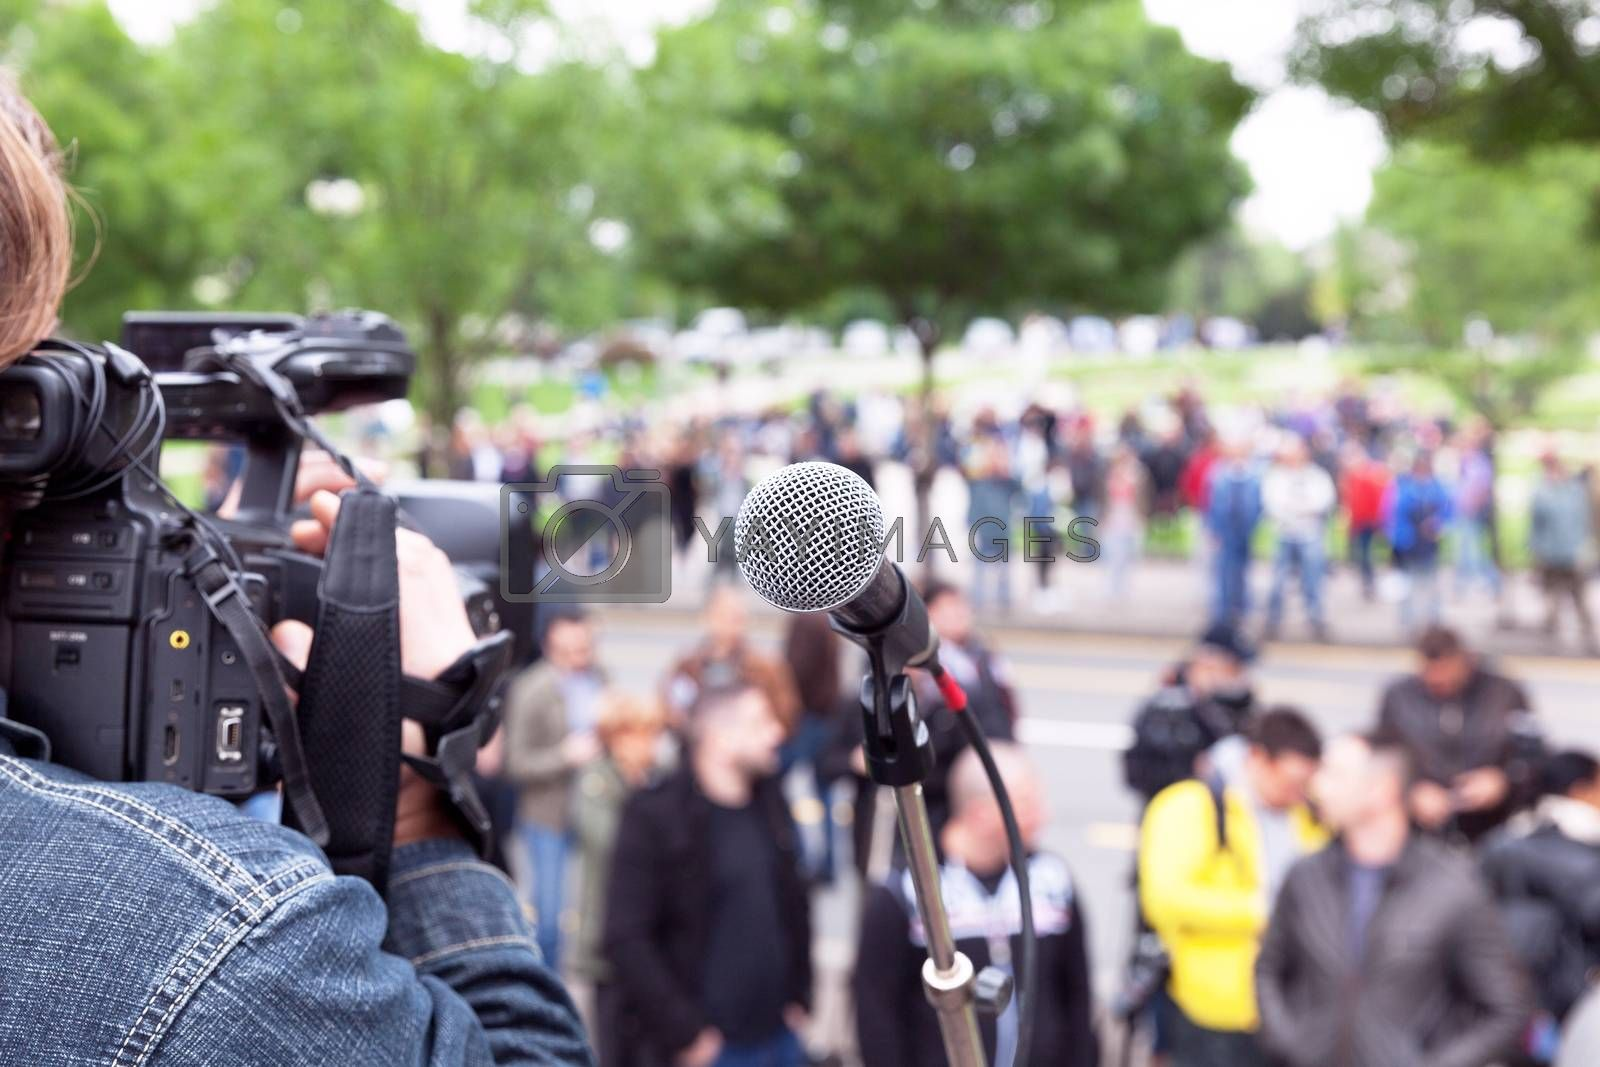 Microphone in focus, camera operator shooting blurred crowd